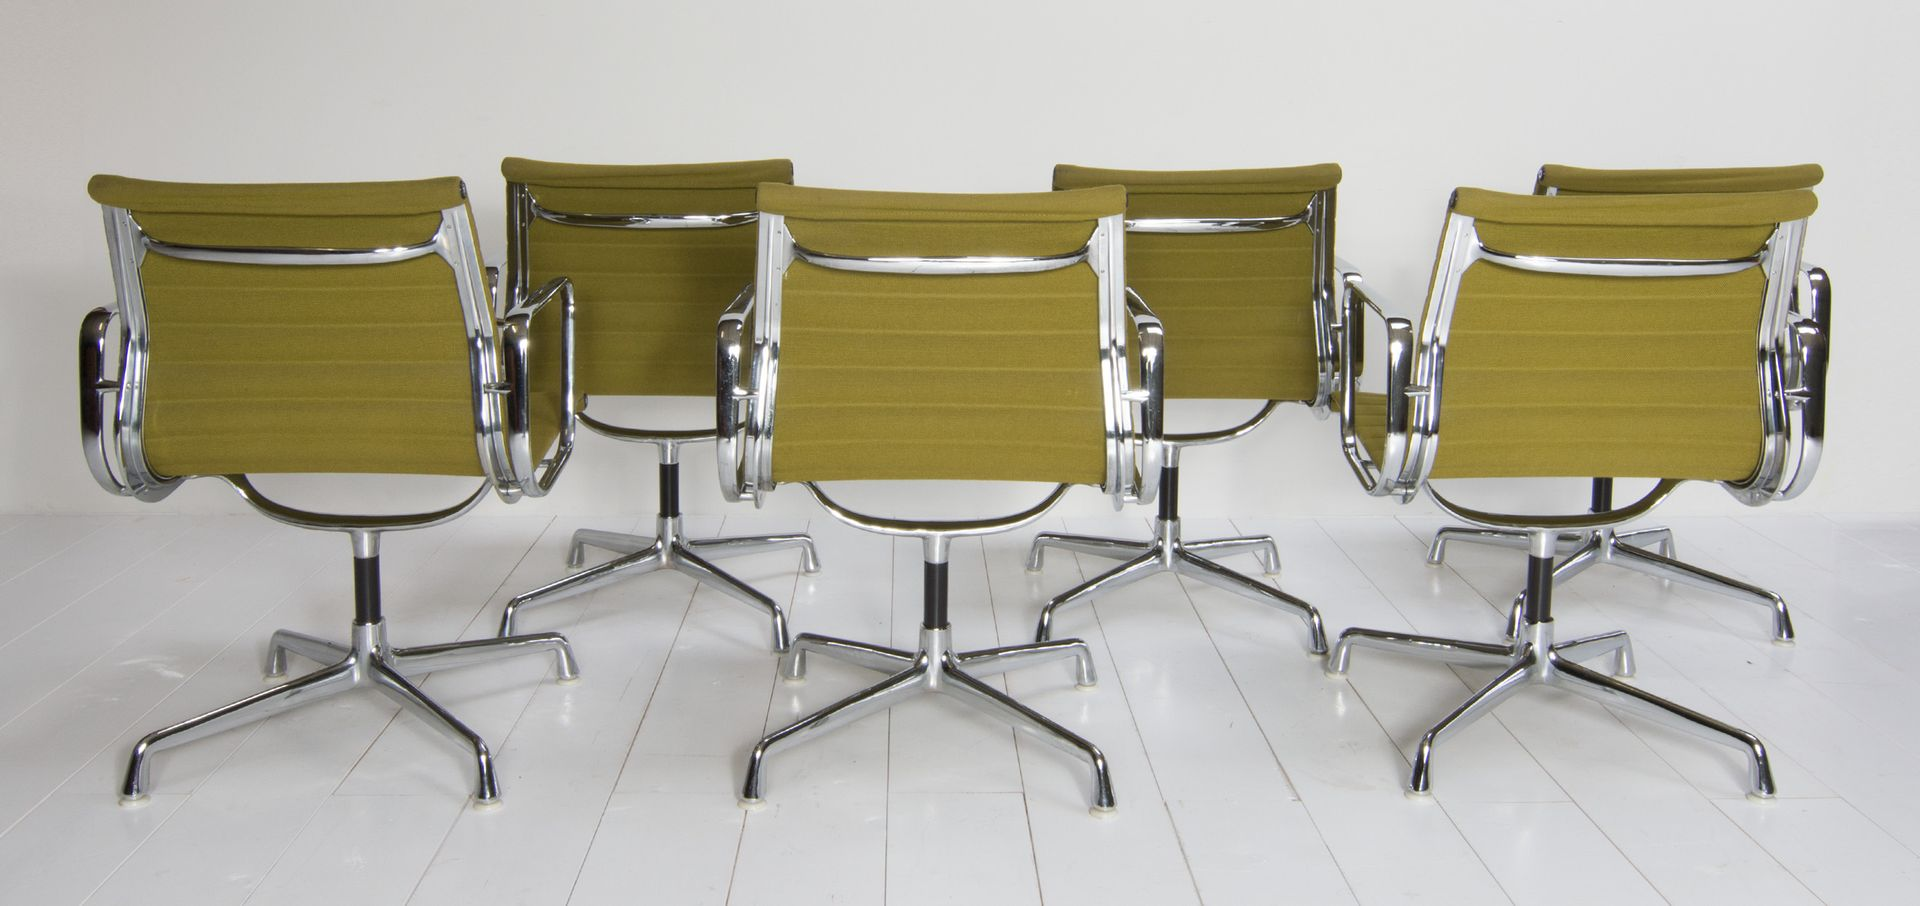 vintage ea108 chairs by charles ray eames for vitra set of 6 for sale at pamono. Black Bedroom Furniture Sets. Home Design Ideas